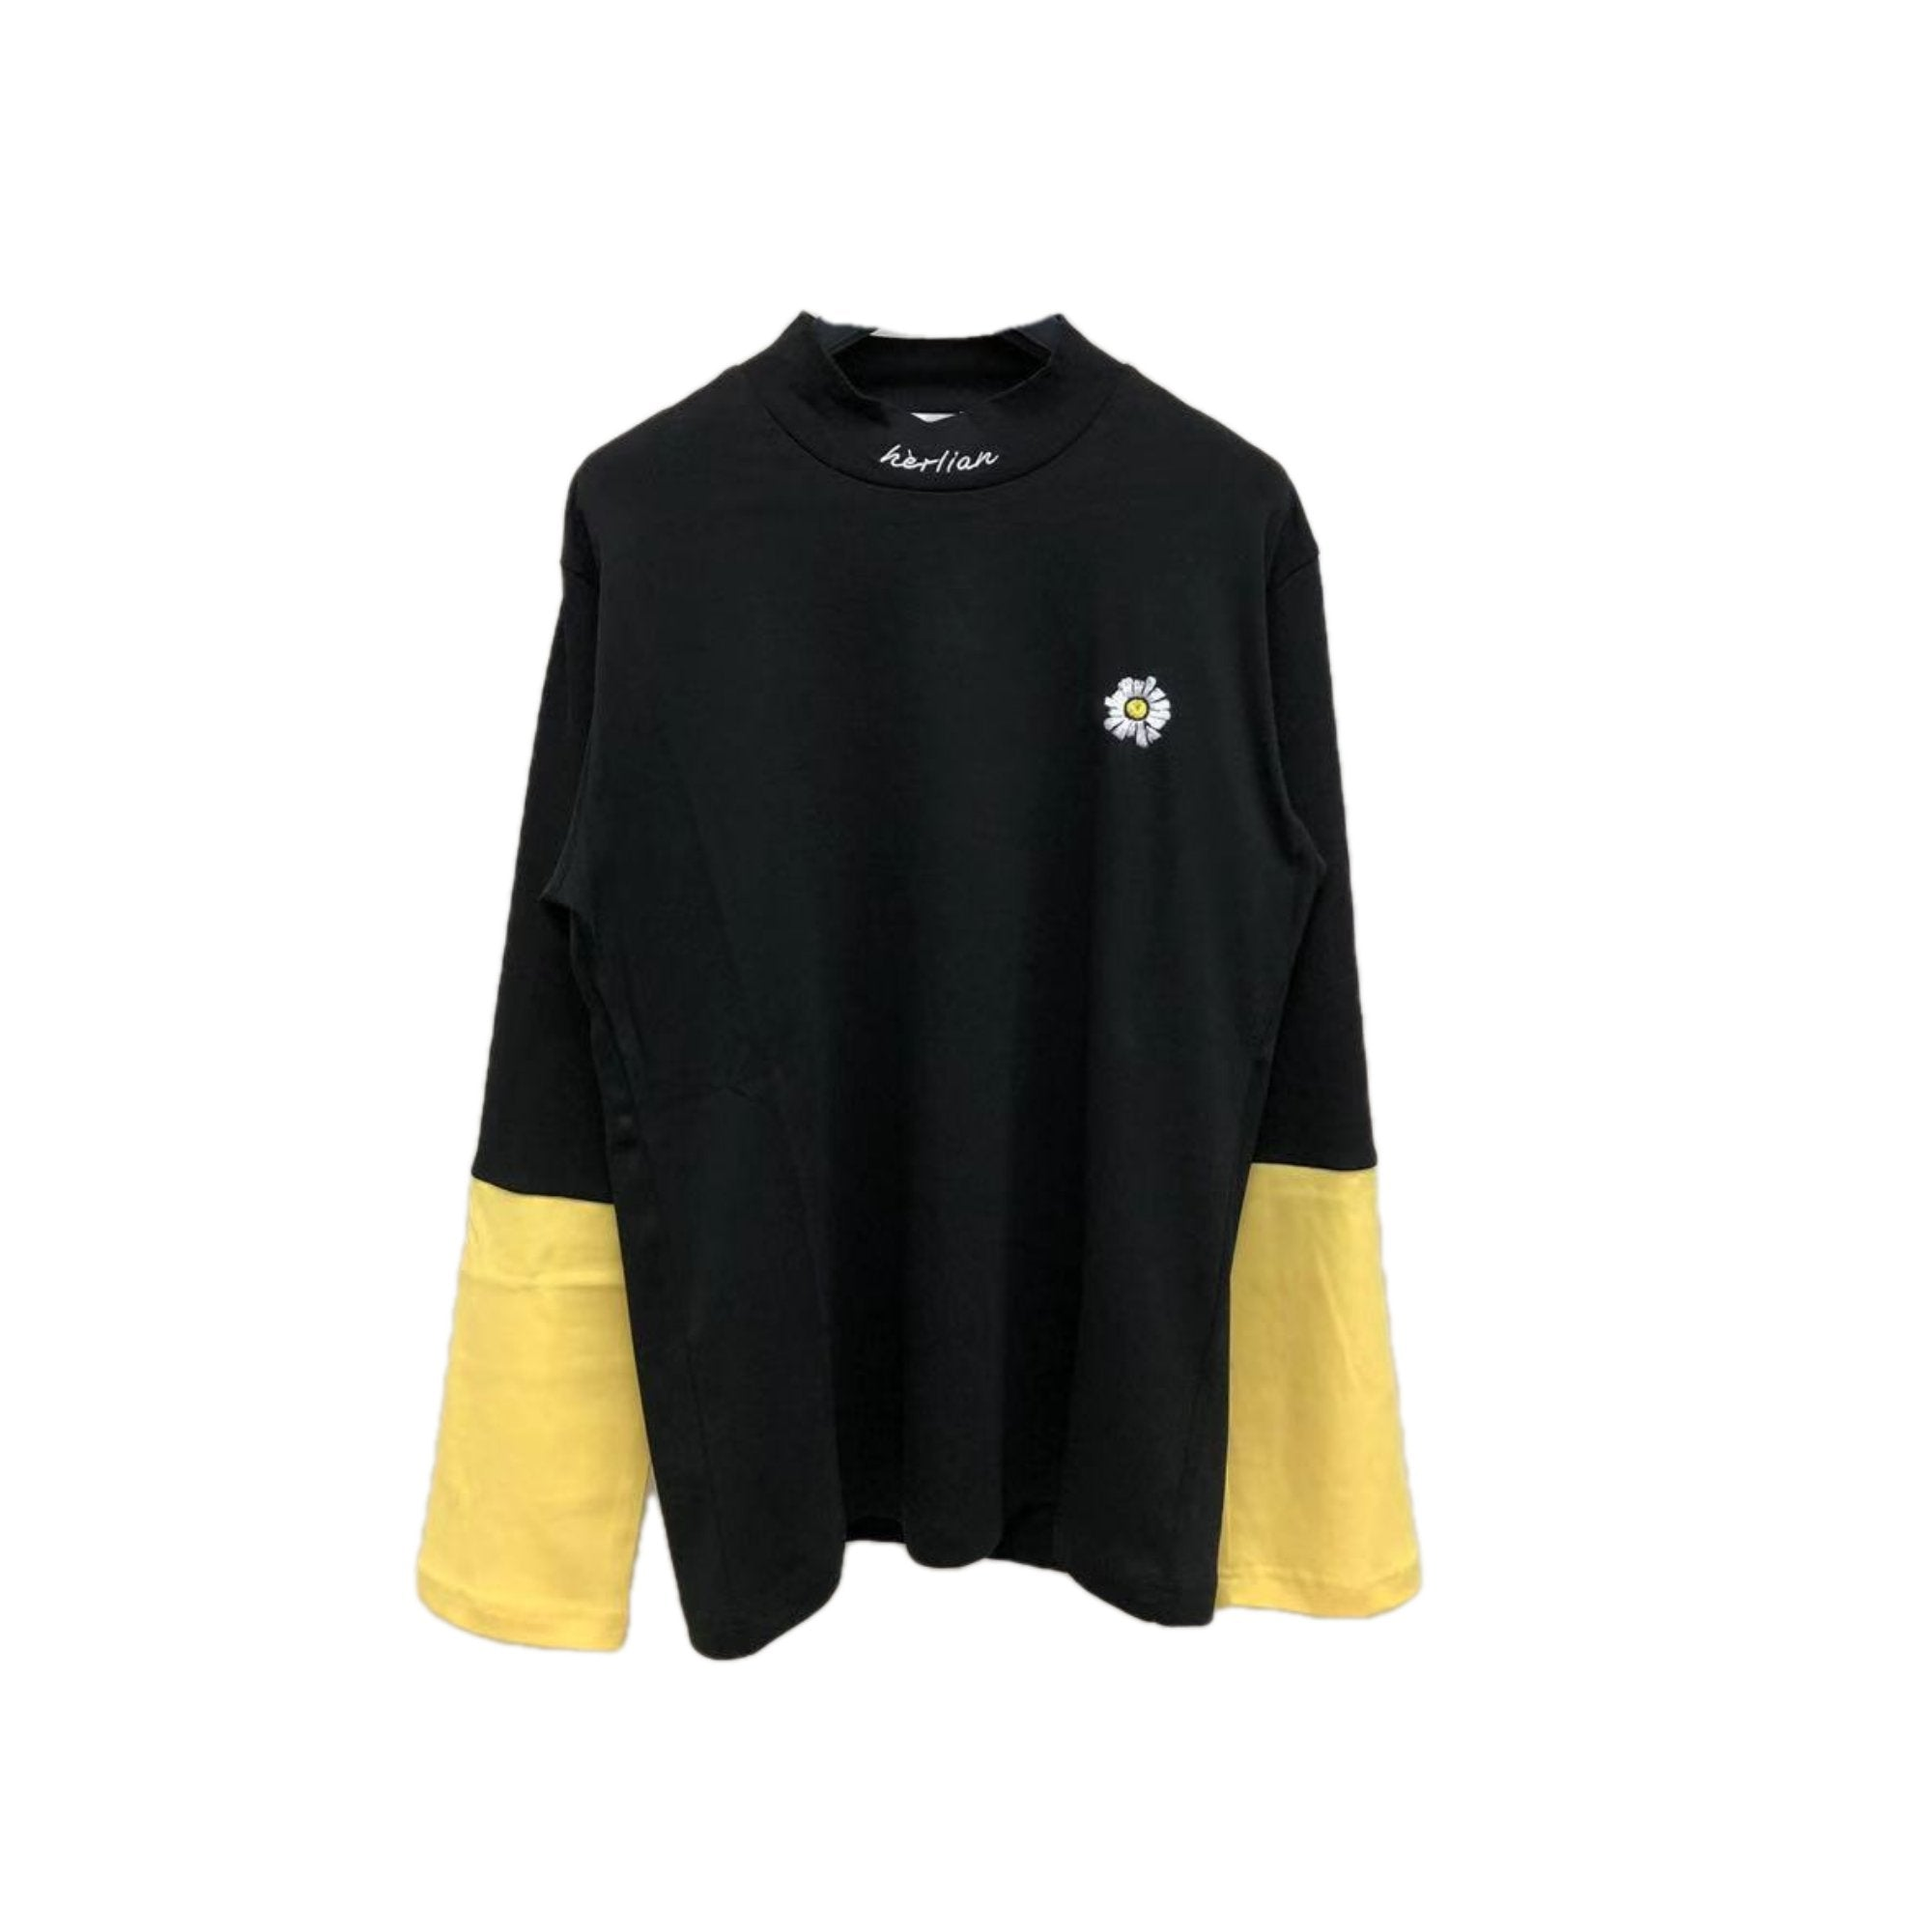 HERLIAN Colorblocked Long-Sleeve Tee | MADA IN CHINA